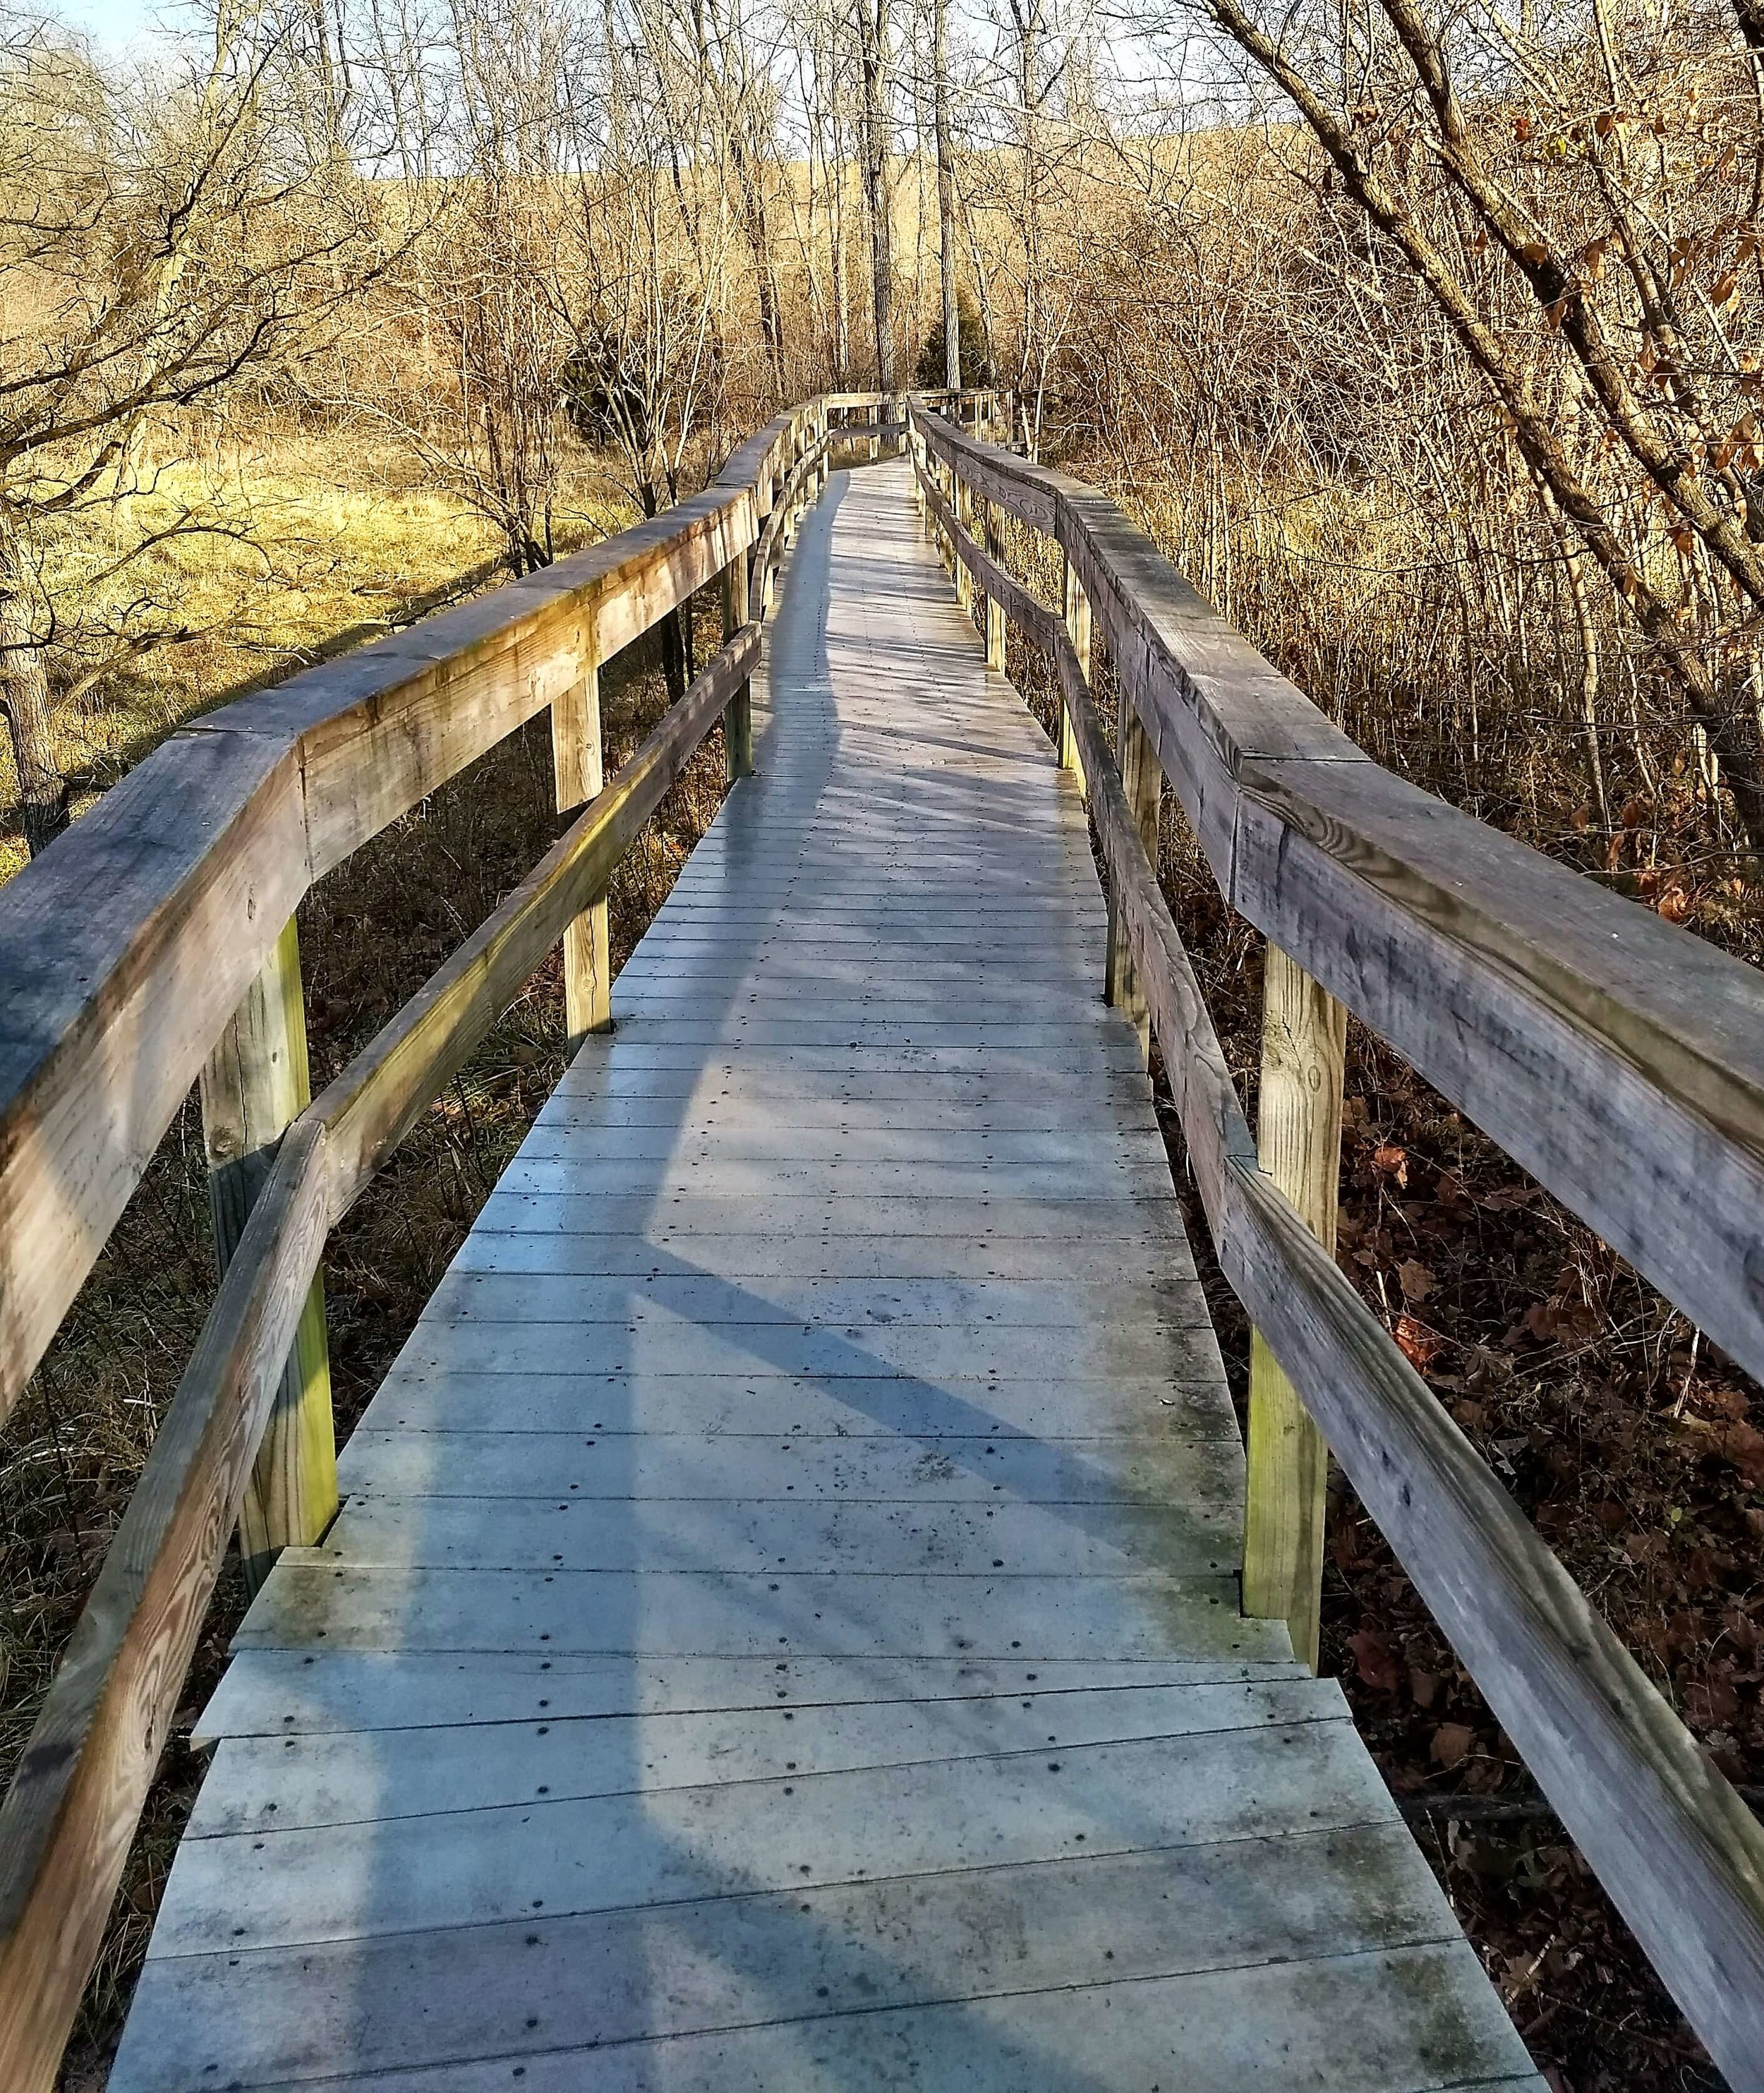 Bridge over grassy lowlands in the park. At the right time of day deer are close enough to touch.